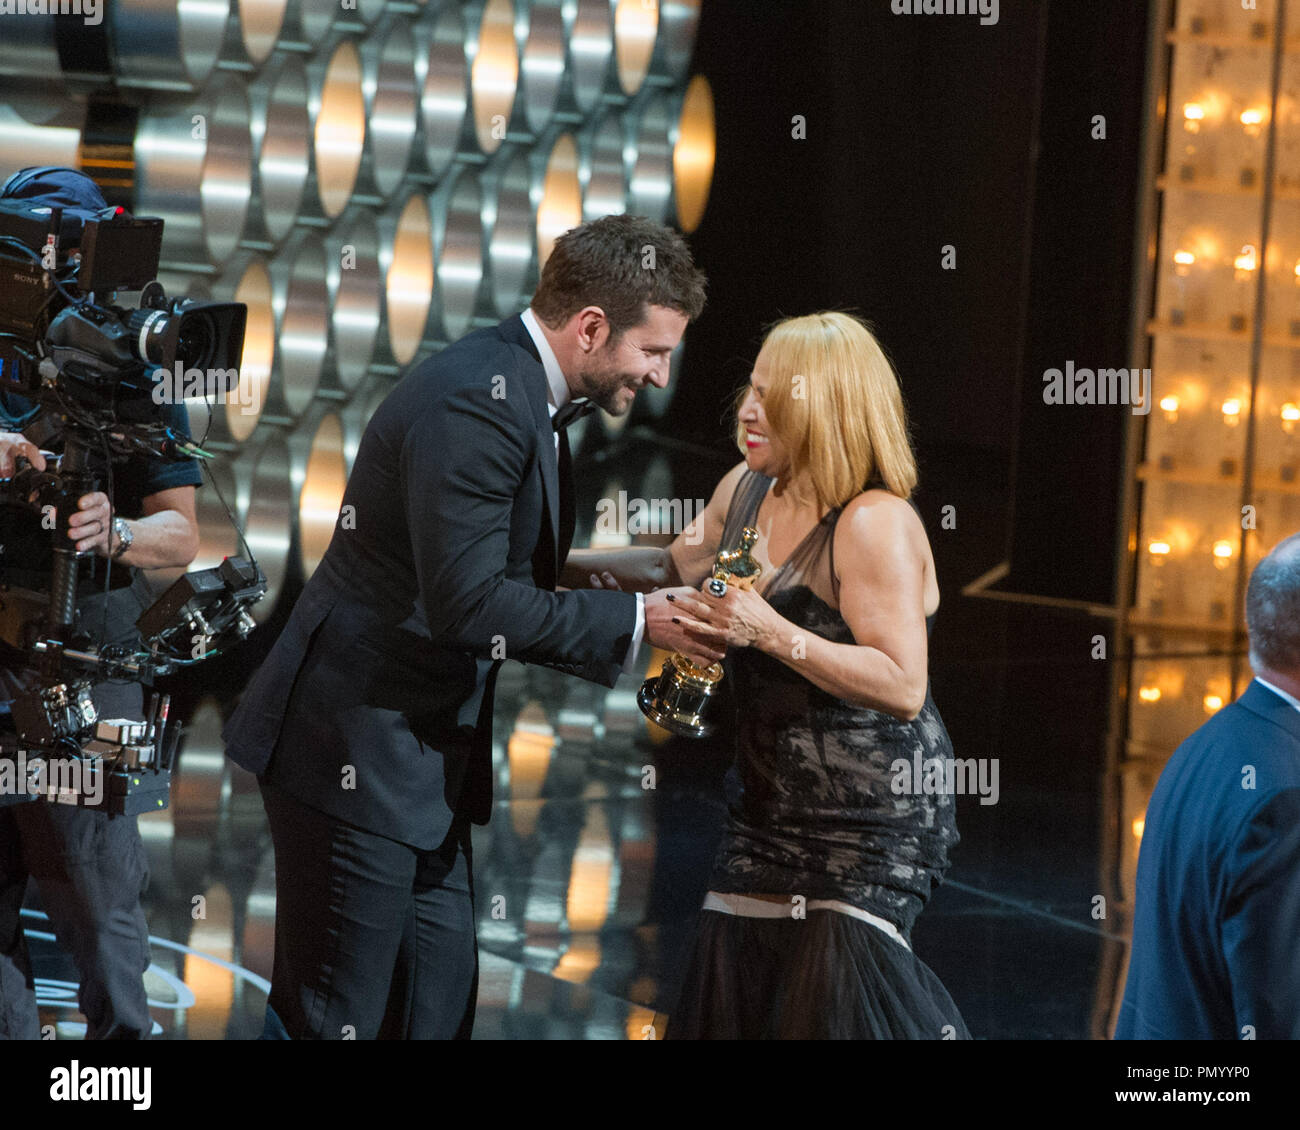 "Singer Darlene Love accepts the Oscar® for the category of Best documentary feature for work on ""20 Feet from Stardom"" from Bradley Cooper during the live ABC Telecast of The Oscars® from the Dolby® Theater in Hollywood, CA Sunday, March 2, 2014.  File Reference # 32268_584  For Editorial Use Only -  All Rights Reserved - Stock Image"